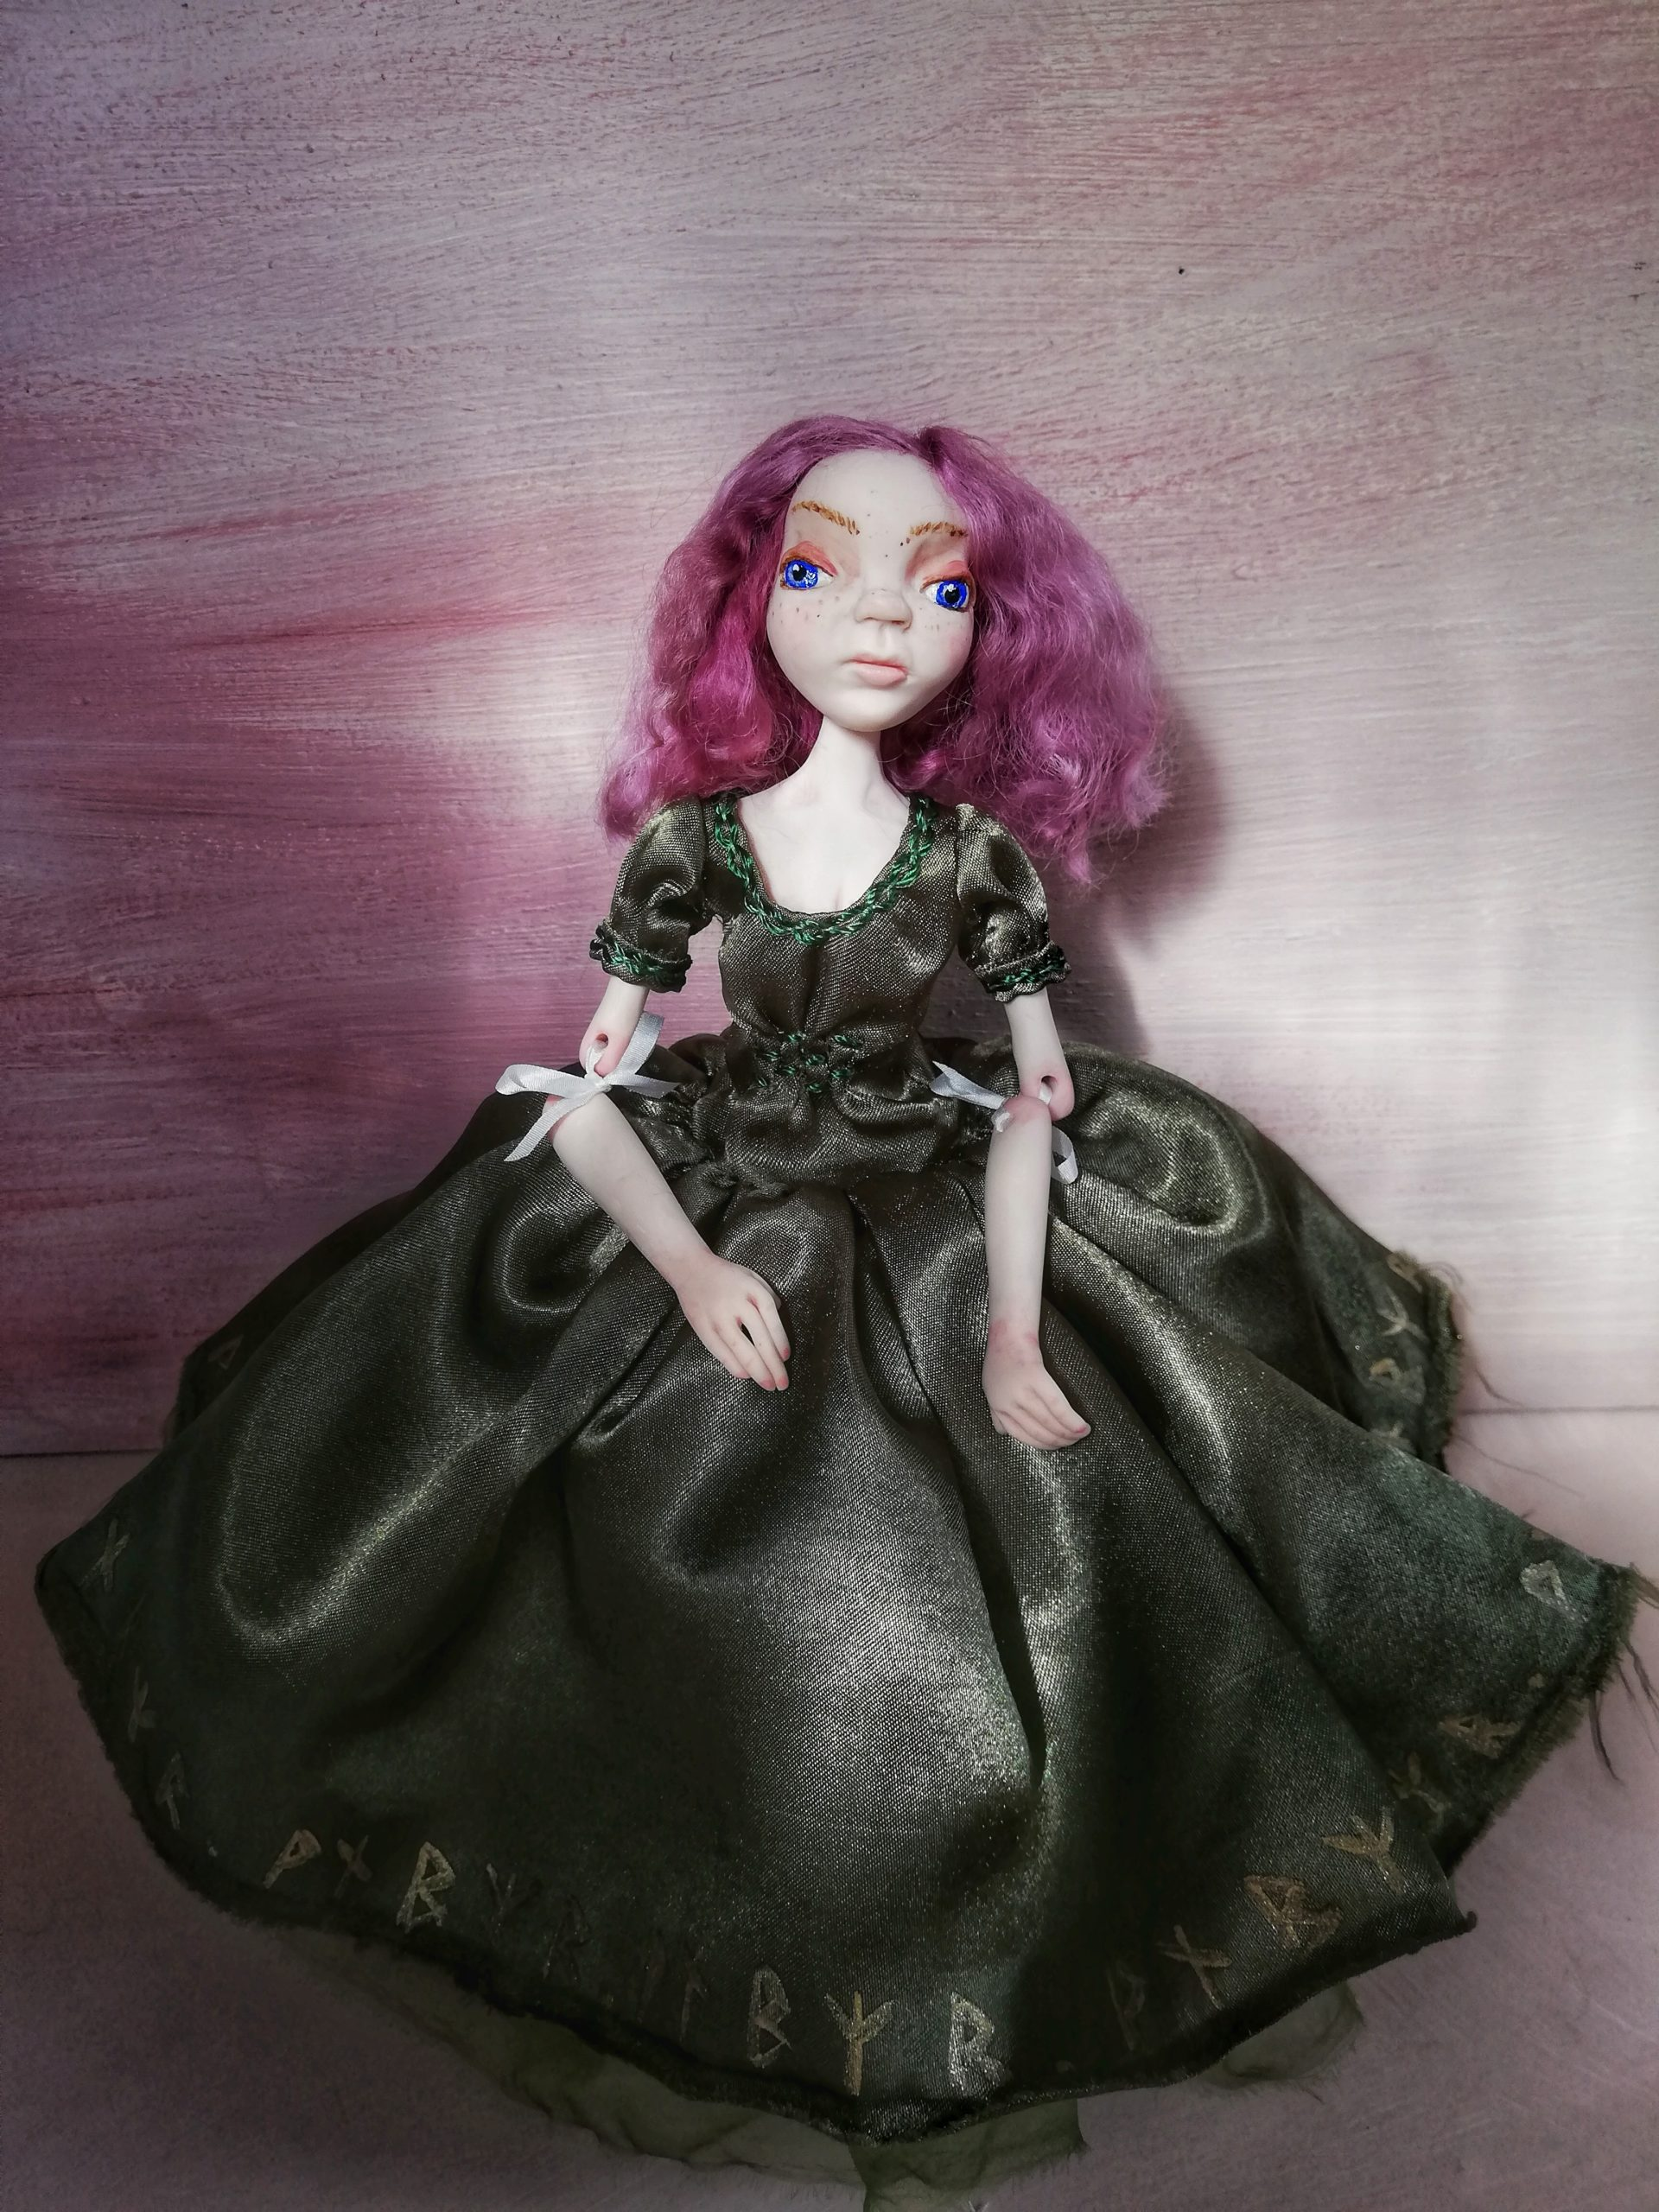 Aria ribbon jointed art doll